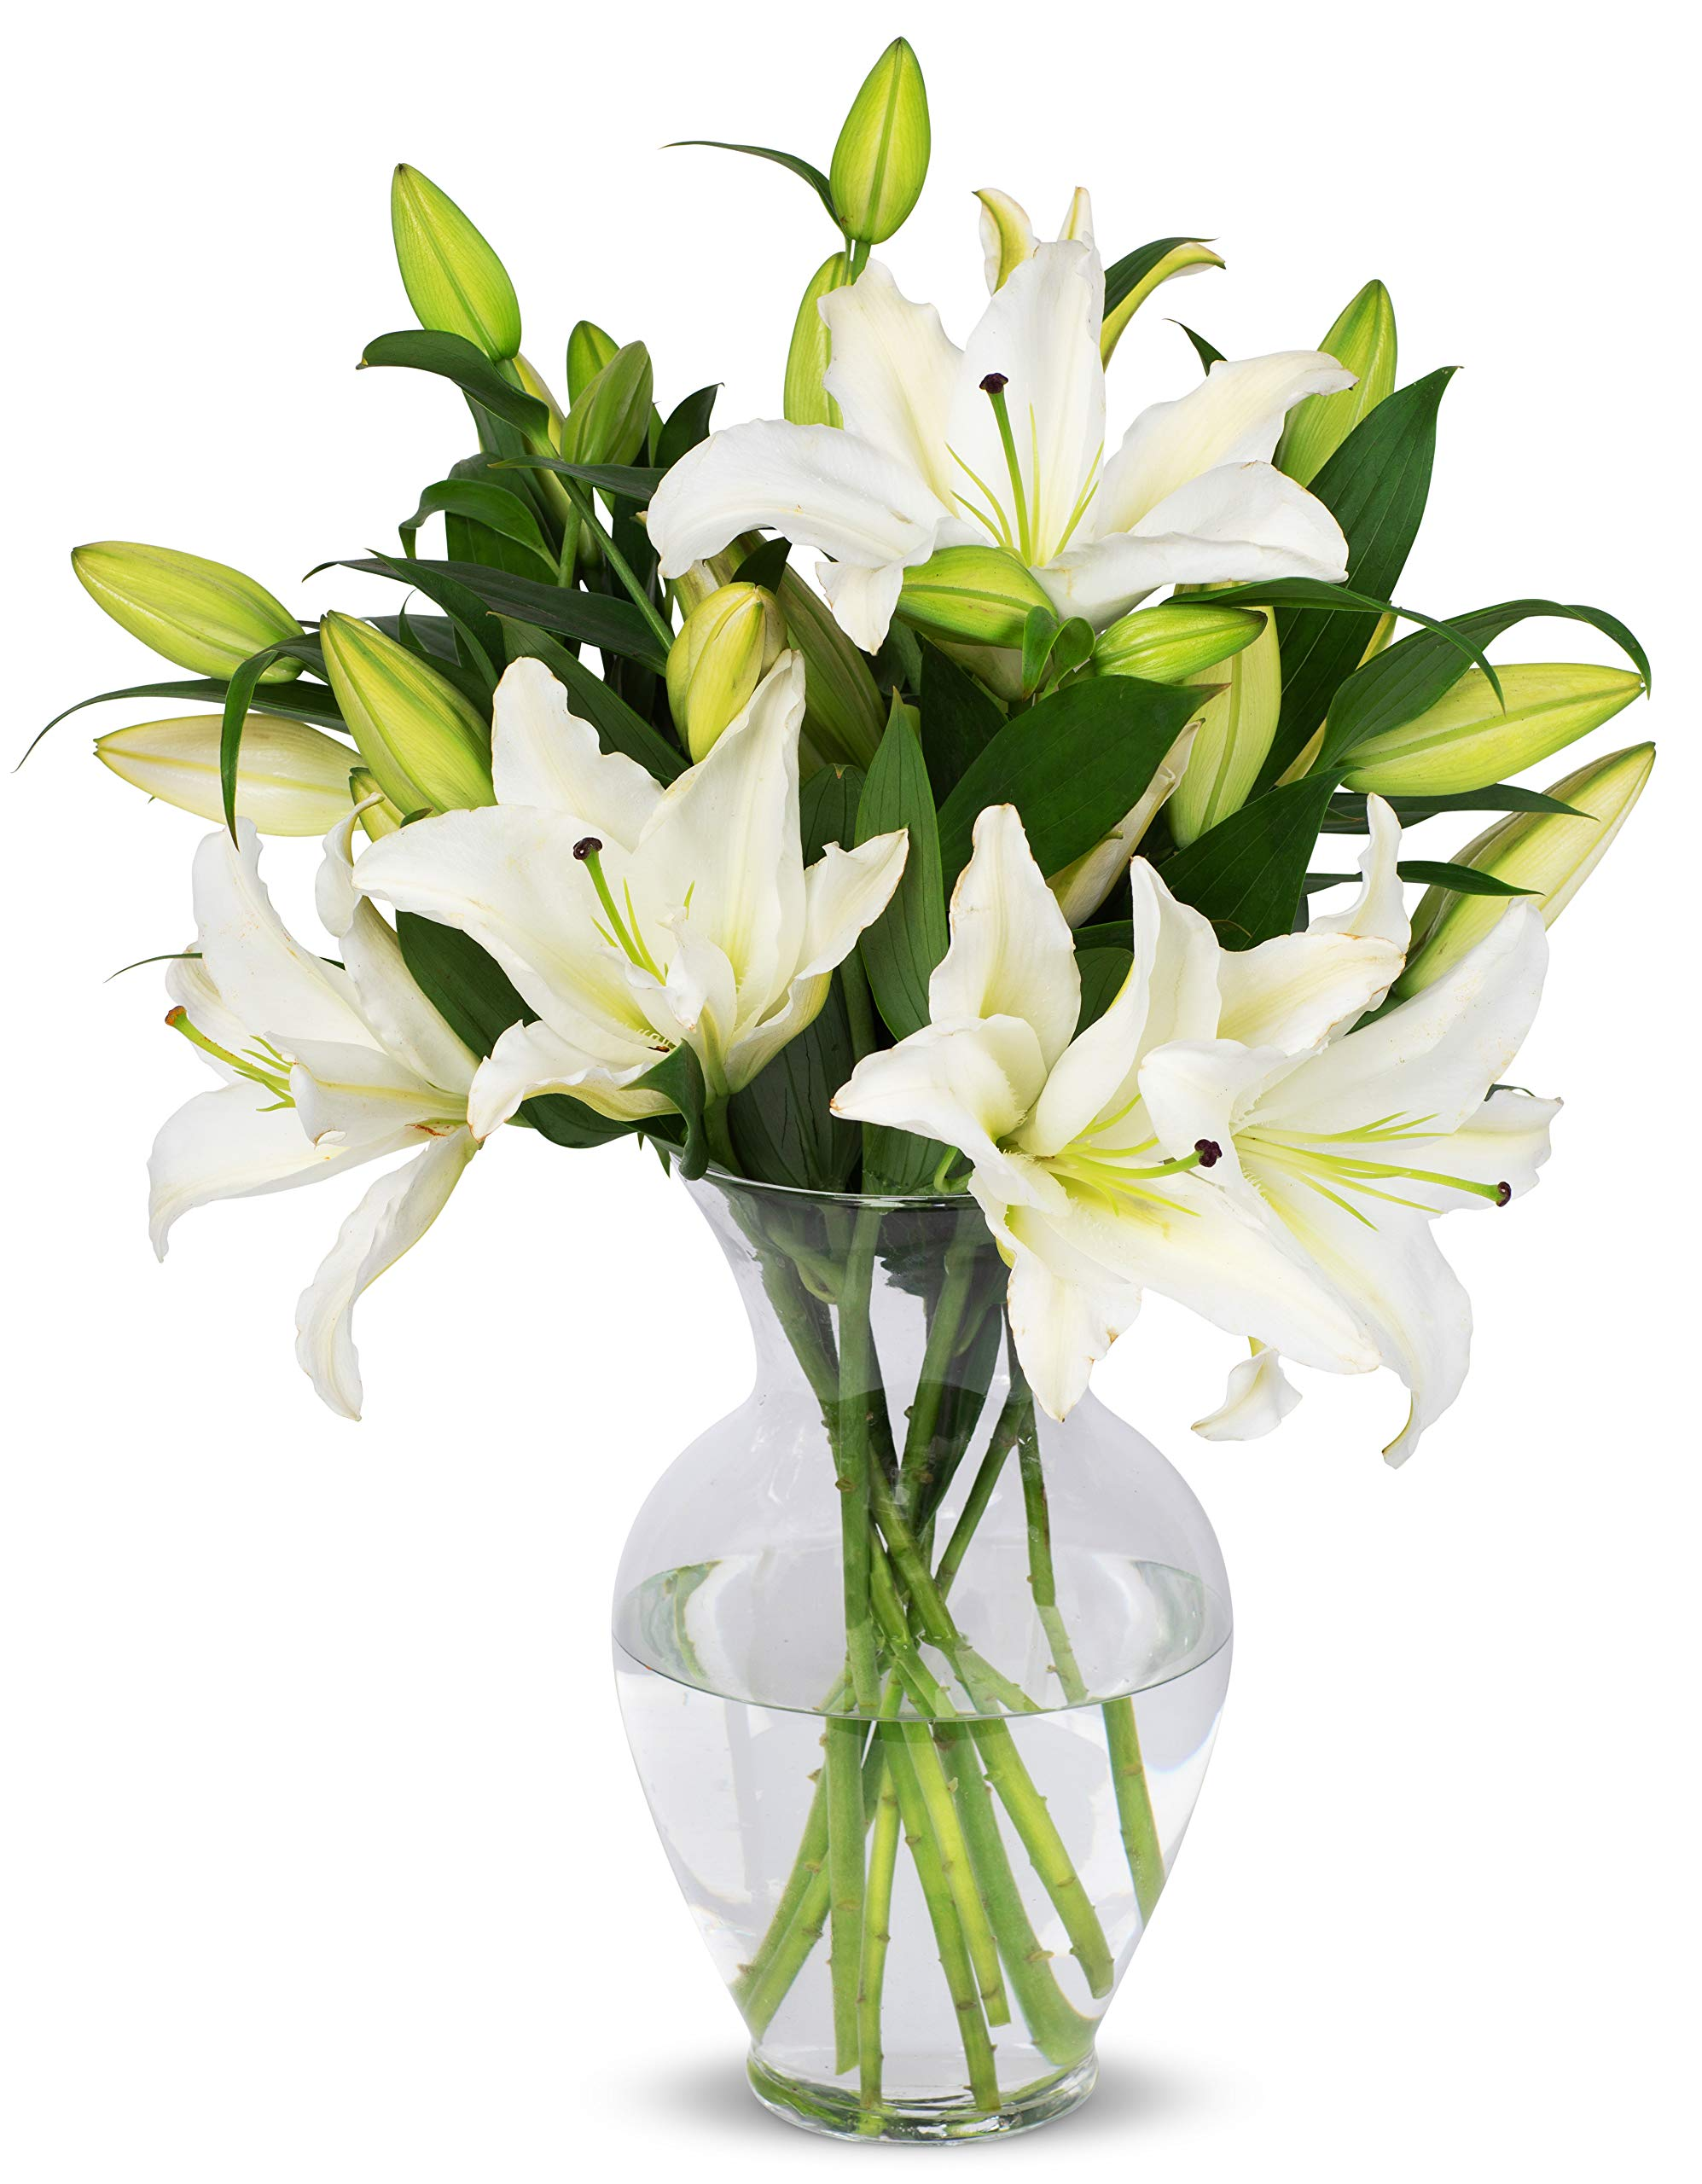 Benchmark Bouquets 8 Stem White Lily Bunch, With Vase (Fresh Cut Flowers) by Benchmark Bouquets